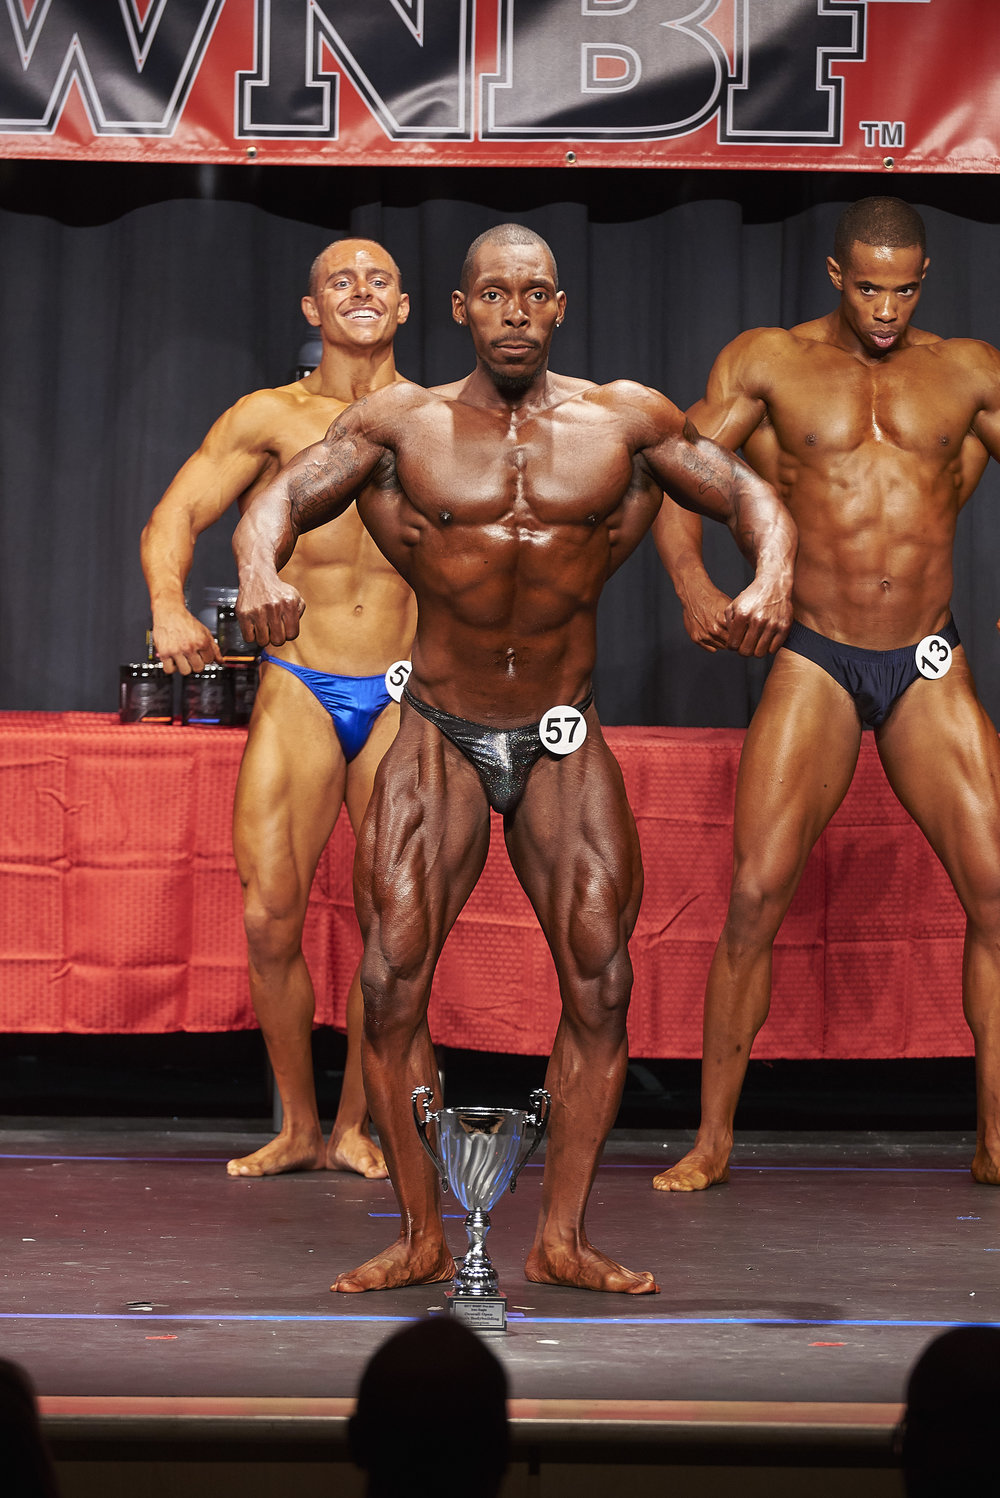 Mens Bodybuilding Overall Winner.jpg